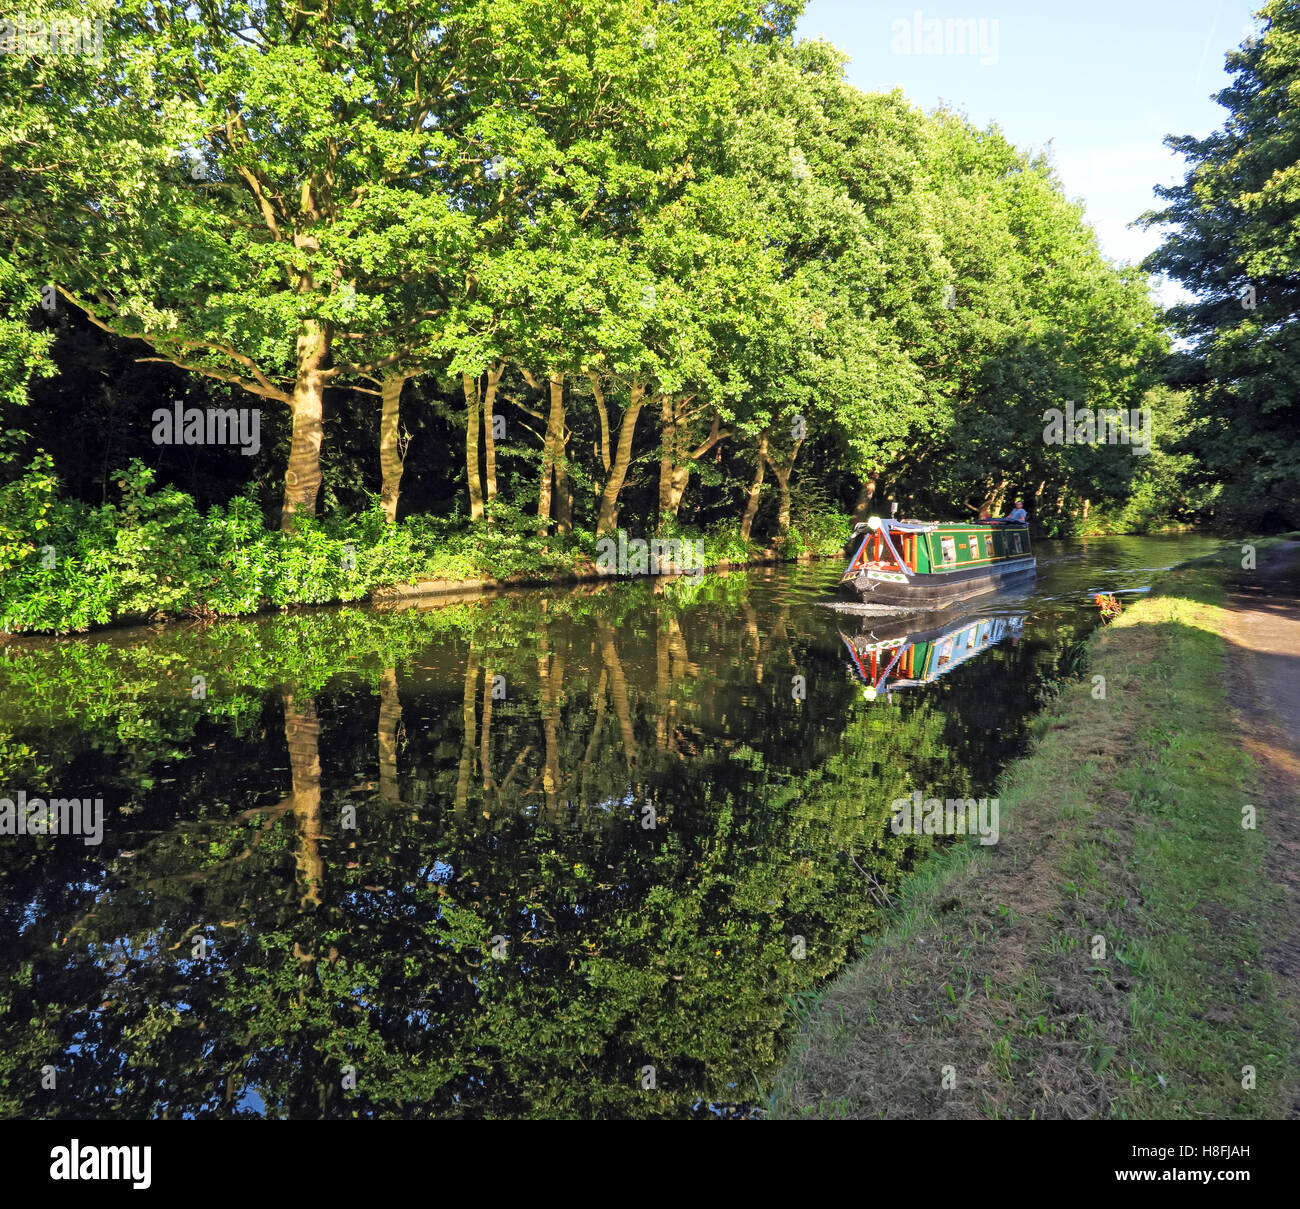 country,countryside,travel,tourism,tourist,walk,walking,cycle,track,trees,leisure.beautiful,still,reflections,Cheshire,England,UK,path,tow,towpath,NW,north,west,Halton,barge,boat,hire,hireboat,hireboats,sail,sailing,pleasure,green,Cycle Track,GoTonySmith,@HotpixUK,Tony,Smith,UK,GB,Great,Britain,United,Kingdom,English,British,England,problem,with,problem with,issue with,Buy Pictures of,Buy Images Of,Images of,Stock Images,Tony Smith,United Kingdom,Great Britain,British Isles,Runcorn Canal,Runcorn Bridgewater Canal,Bridgewater Canal Halton